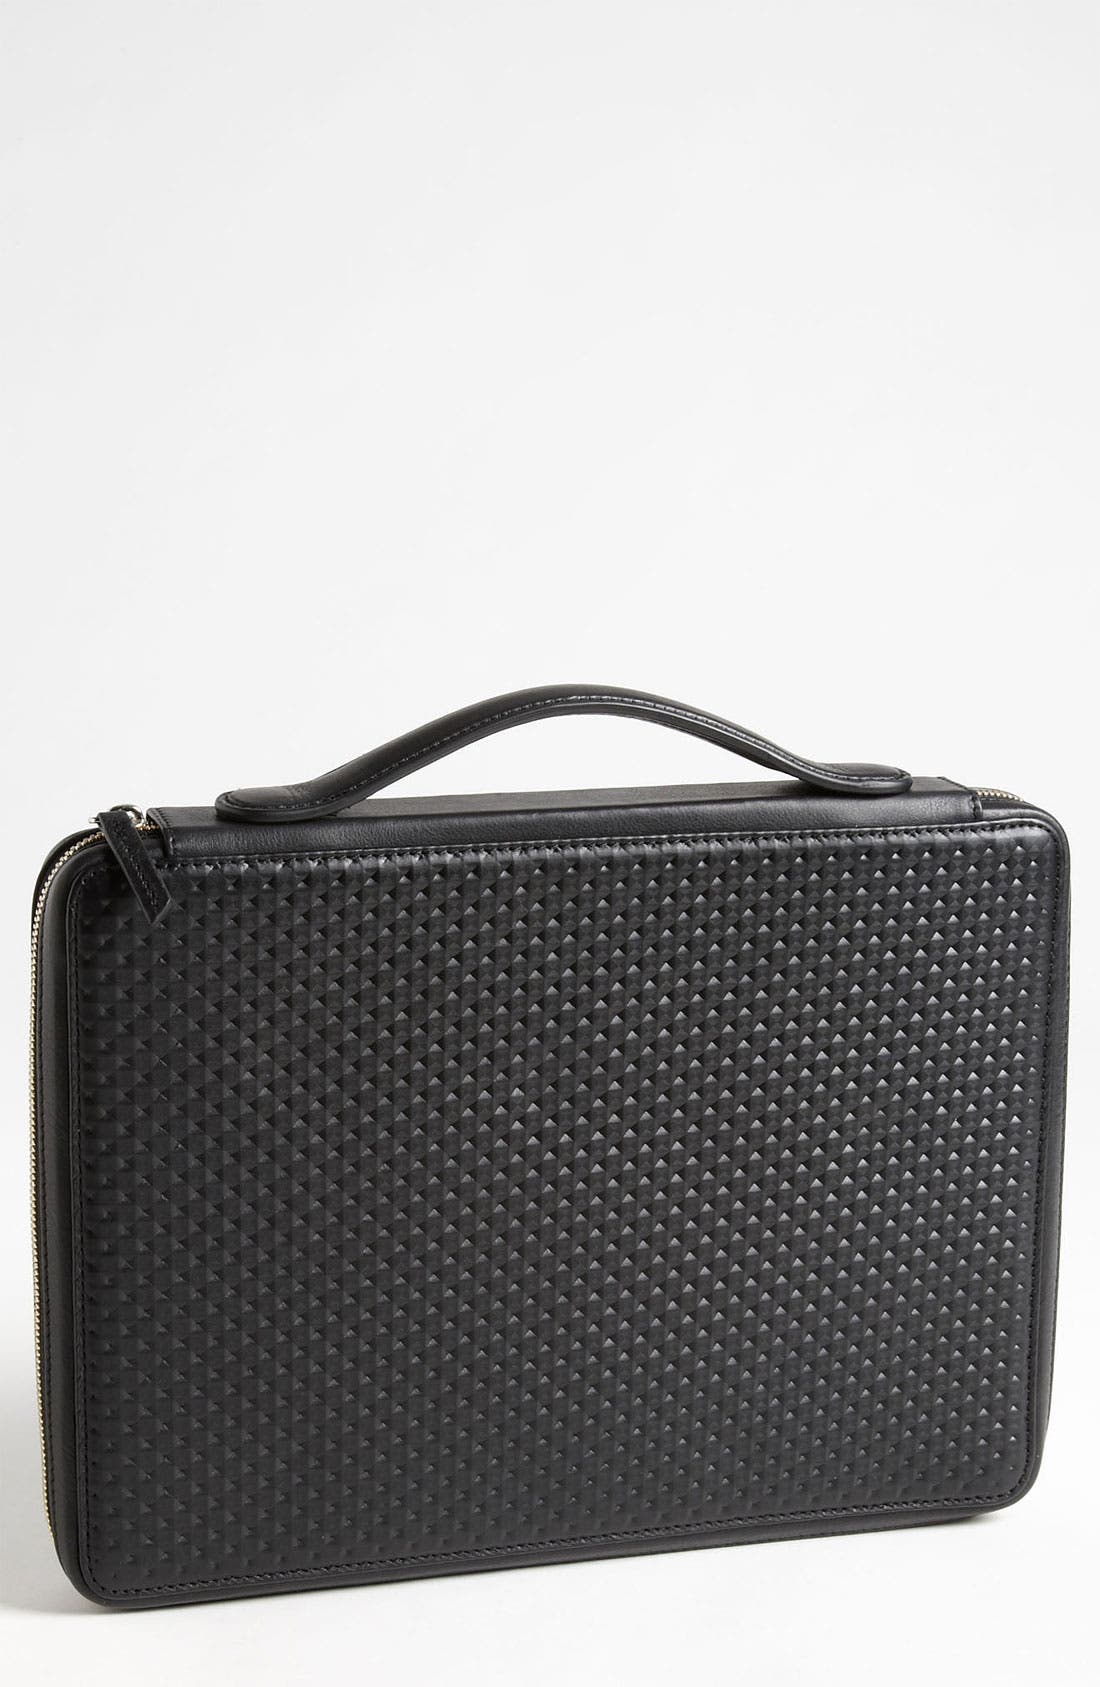 Main Image - WANT Les Essentiels de la Vie 'Kansai' Computer Case (13 Inch)